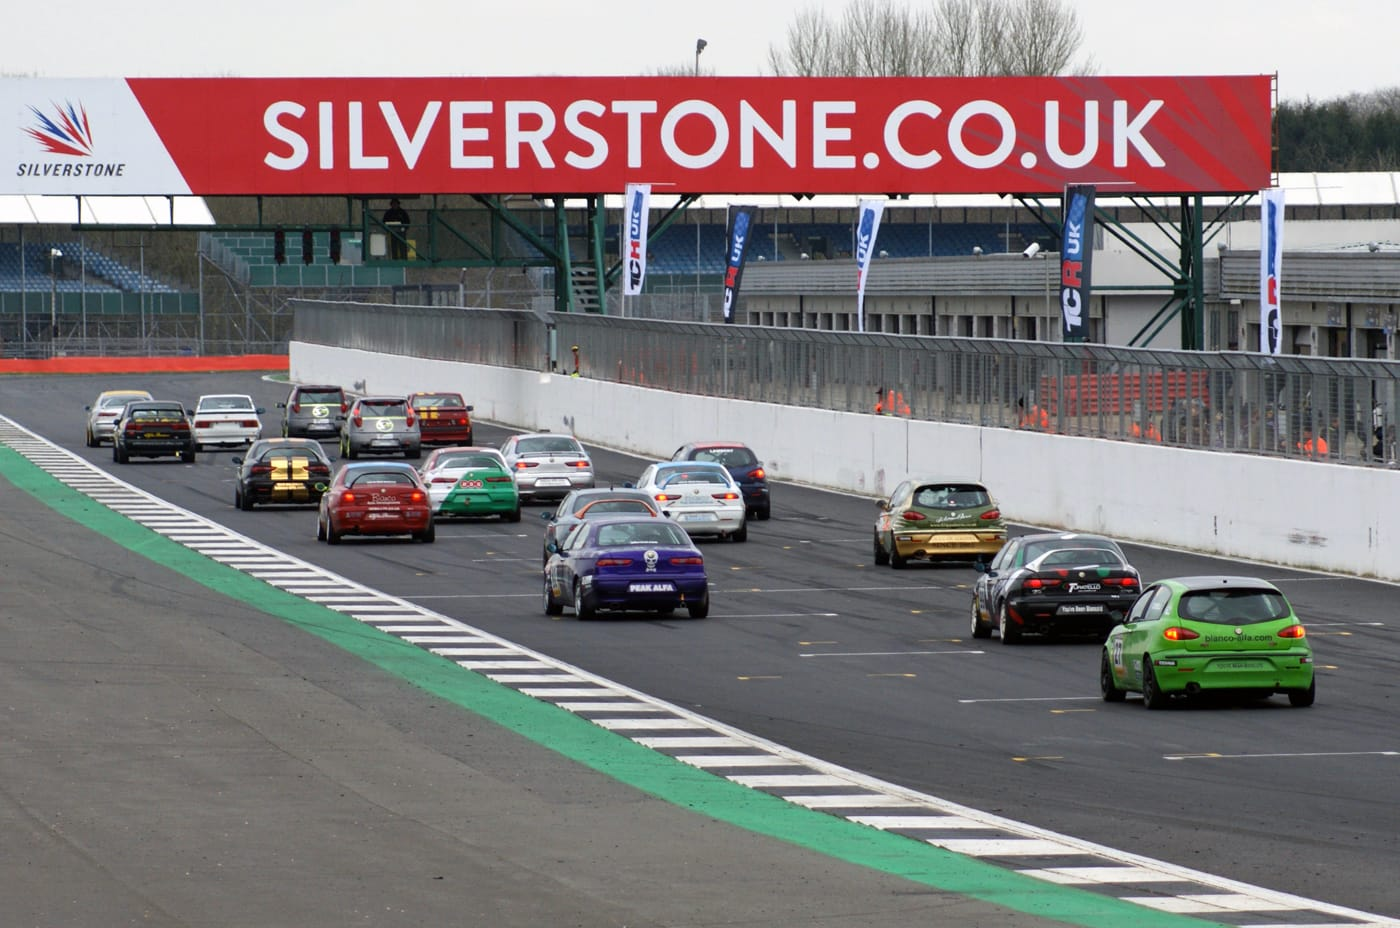 Silverstone 2021 Preview